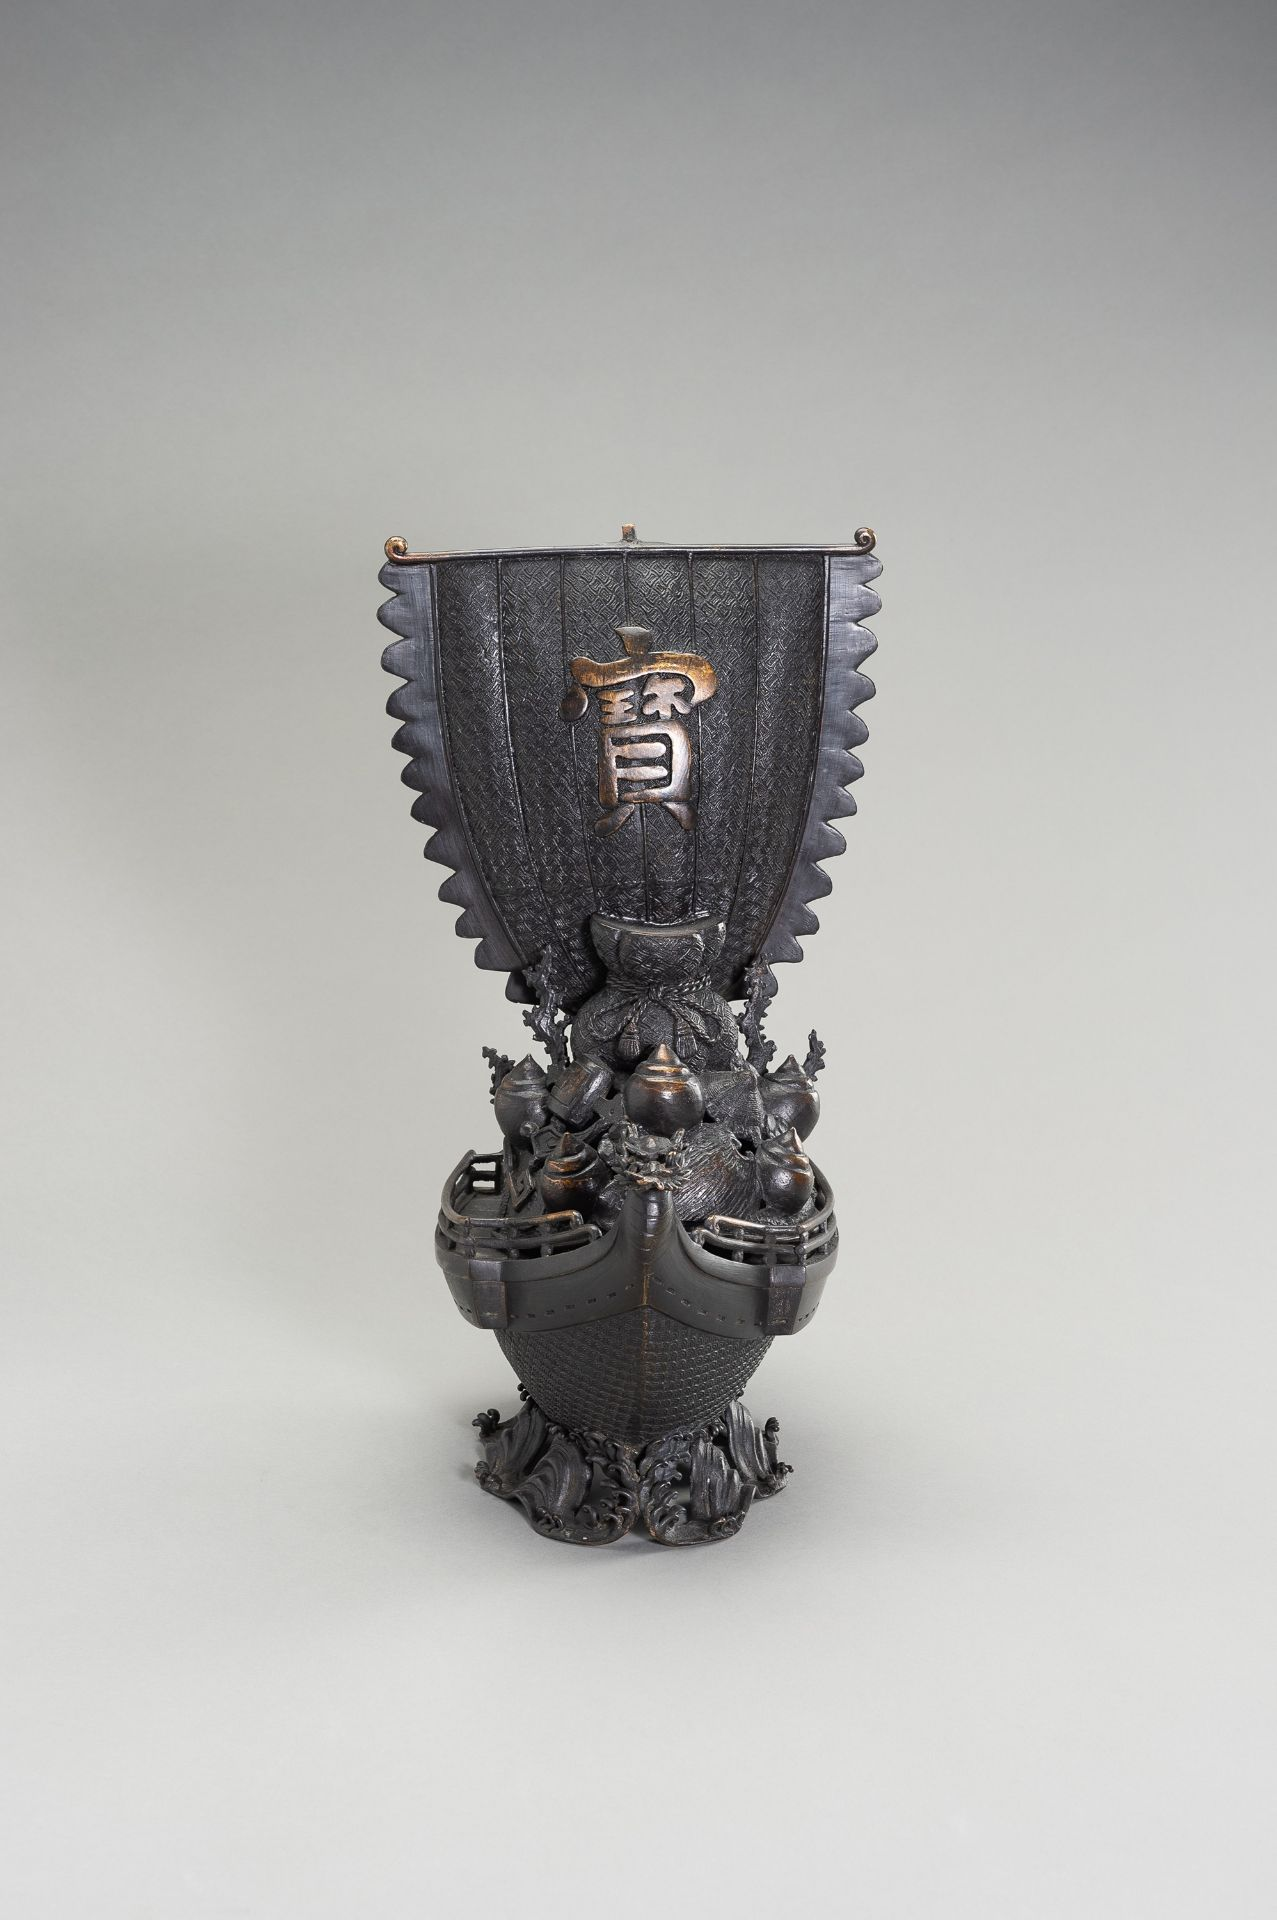 A LARGE BRONZE CENSER IN THE SHAPE OF A TREASURE SHIP - Image 5 of 13